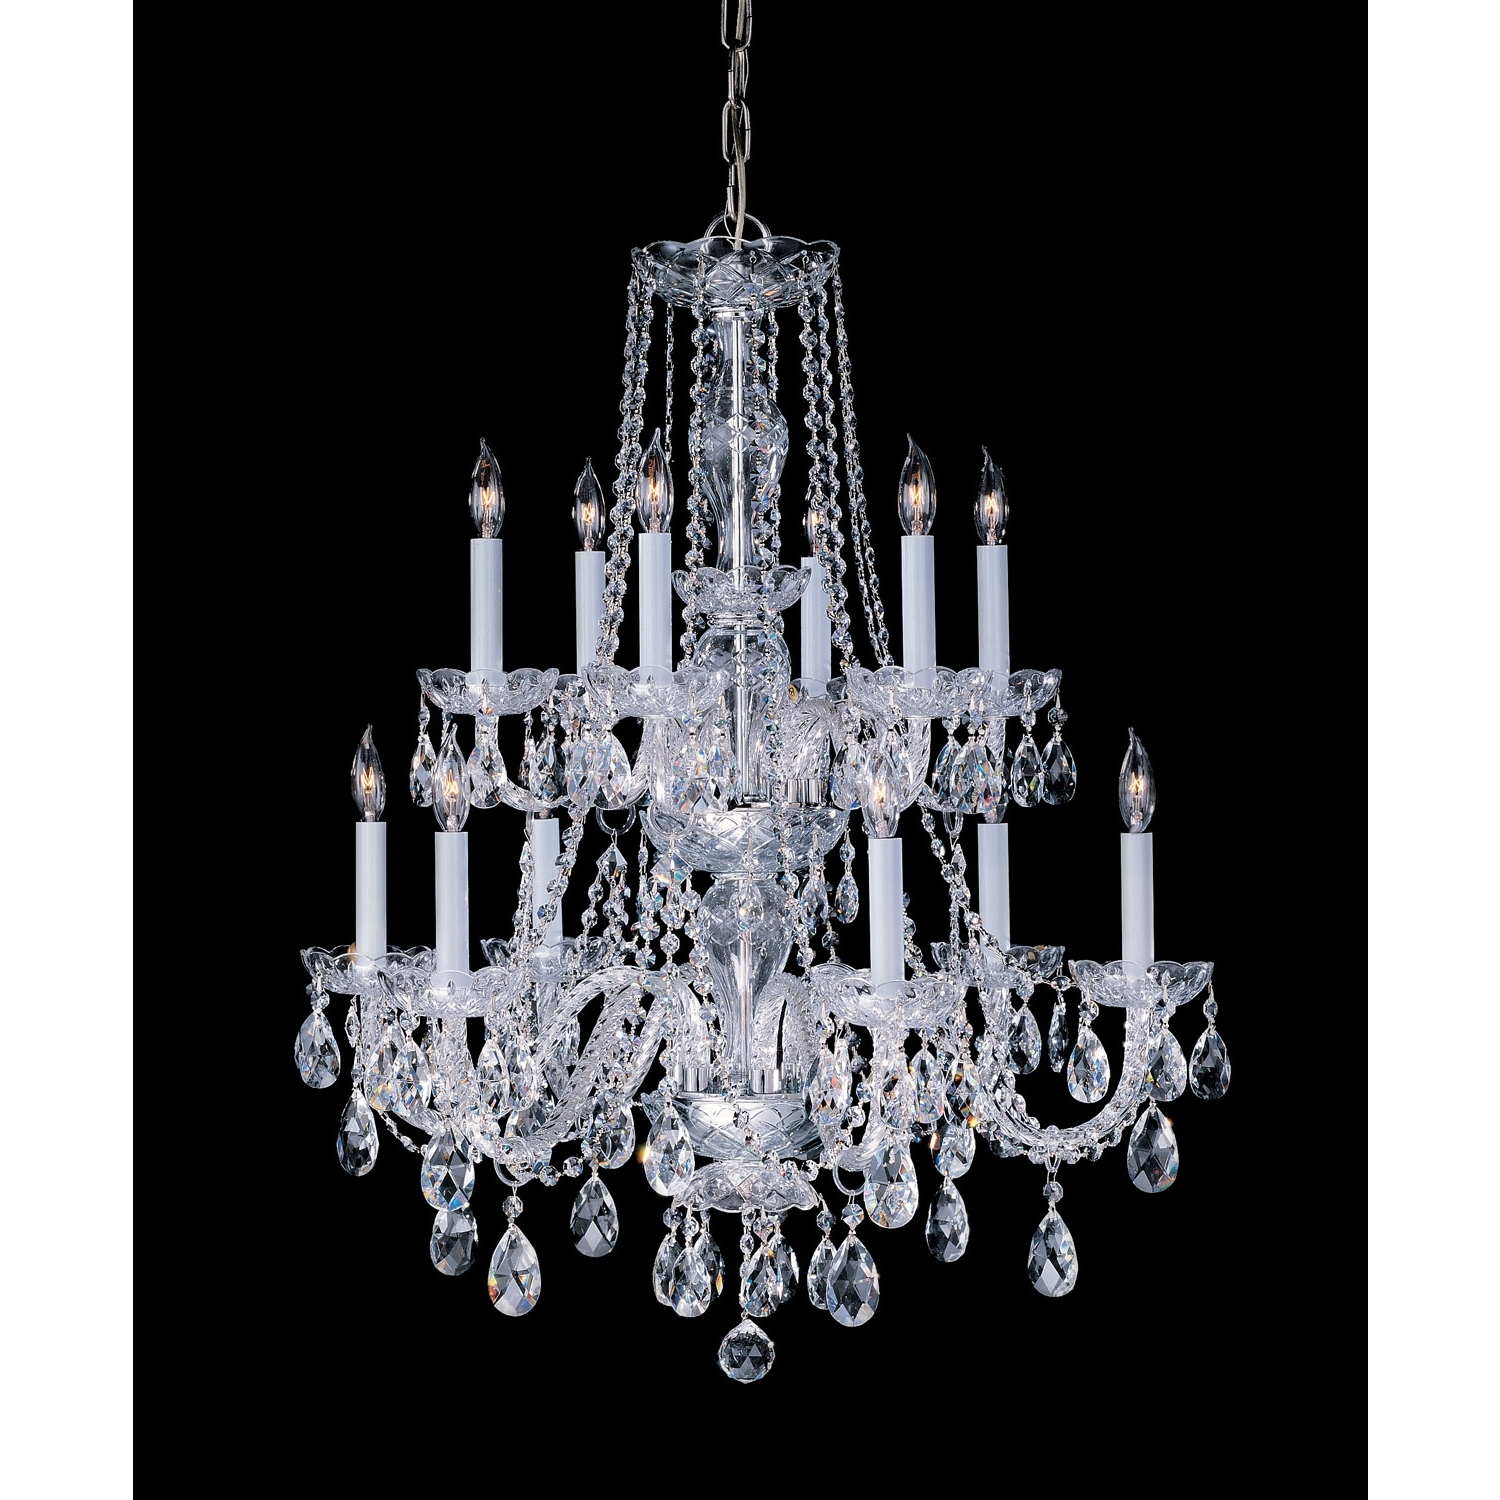 Crystorama Lighting Group Traditional Crystal Polished Brass Twelve Intended For Current Traditional Crystal Chandeliers (View 7 of 20)